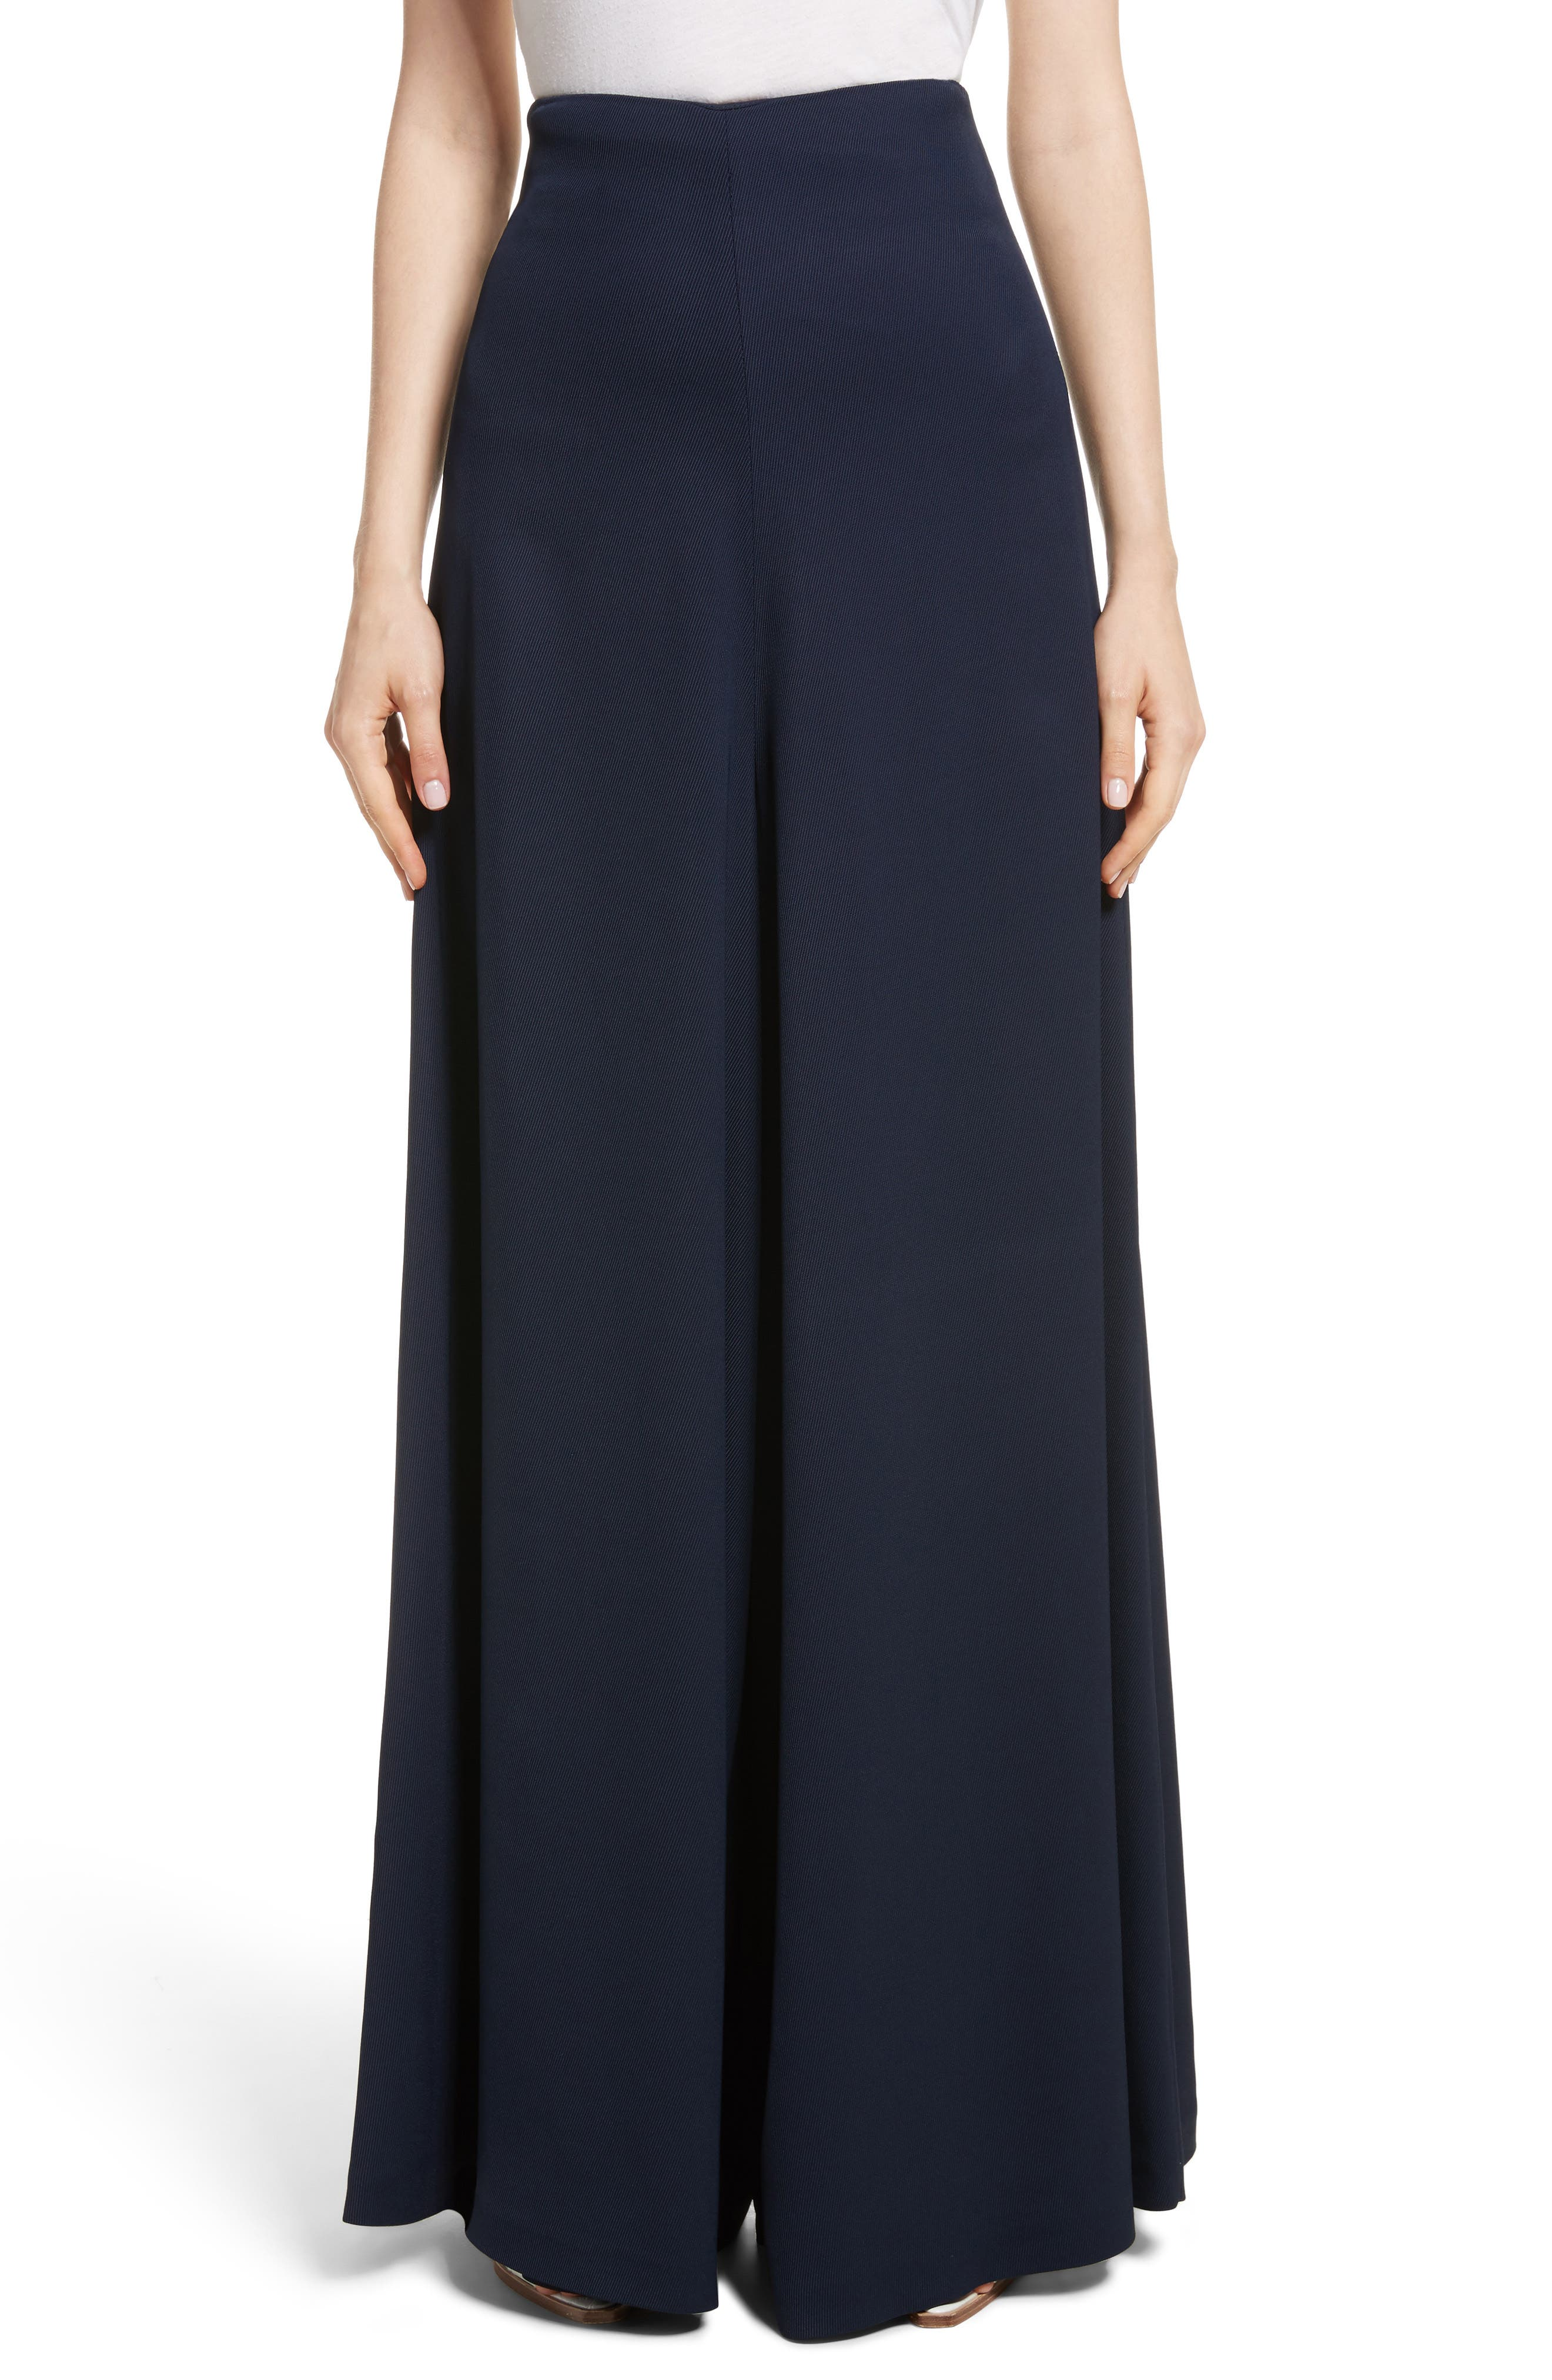 A.W.A.K.E. Wide Leg Trousers